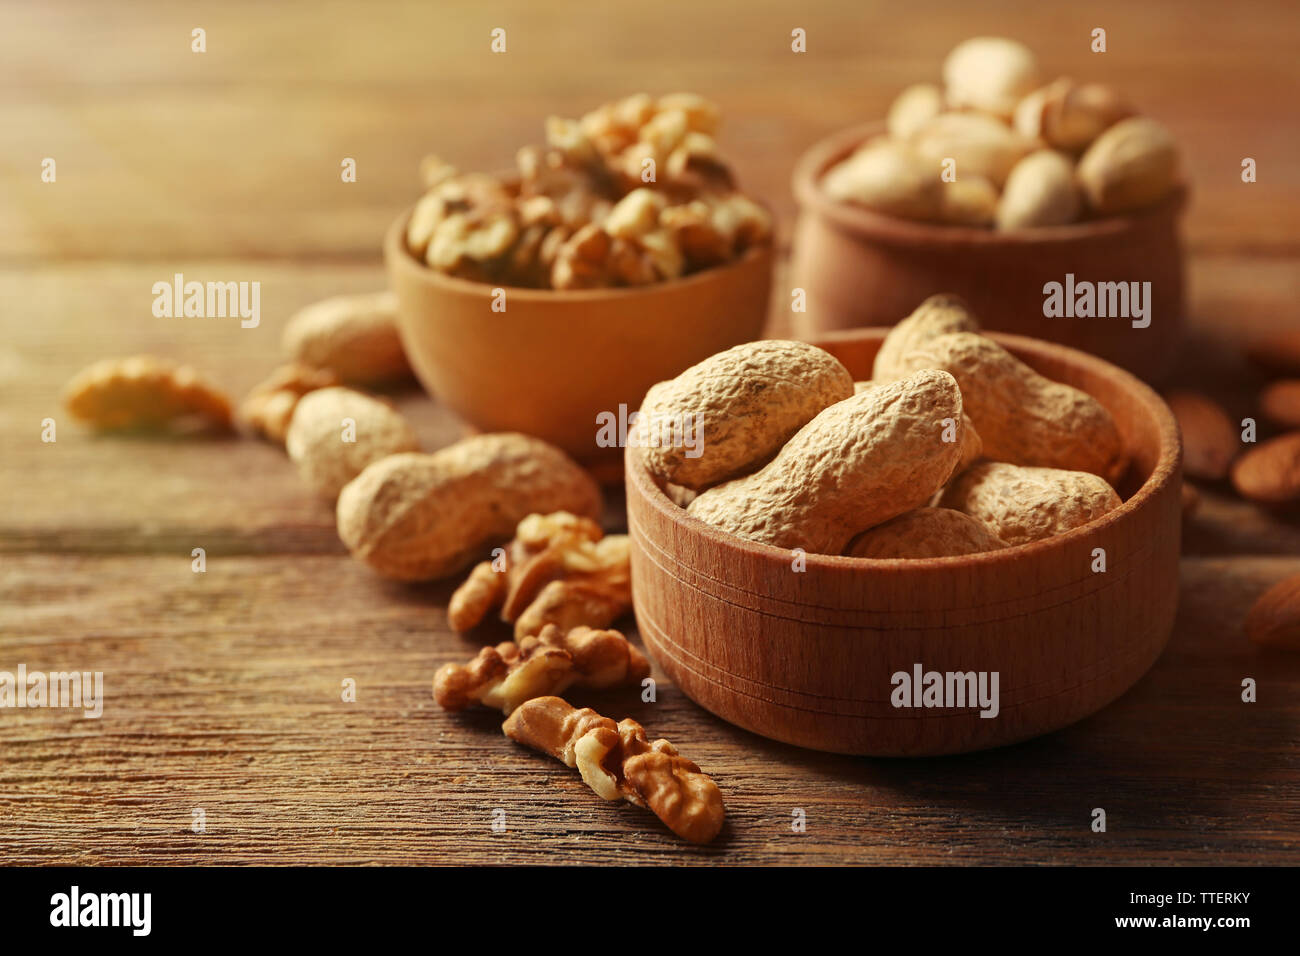 Pistachios, almonds, peanuts and walnut kernels in the wooden bowls on the table, close-up Stock Photo